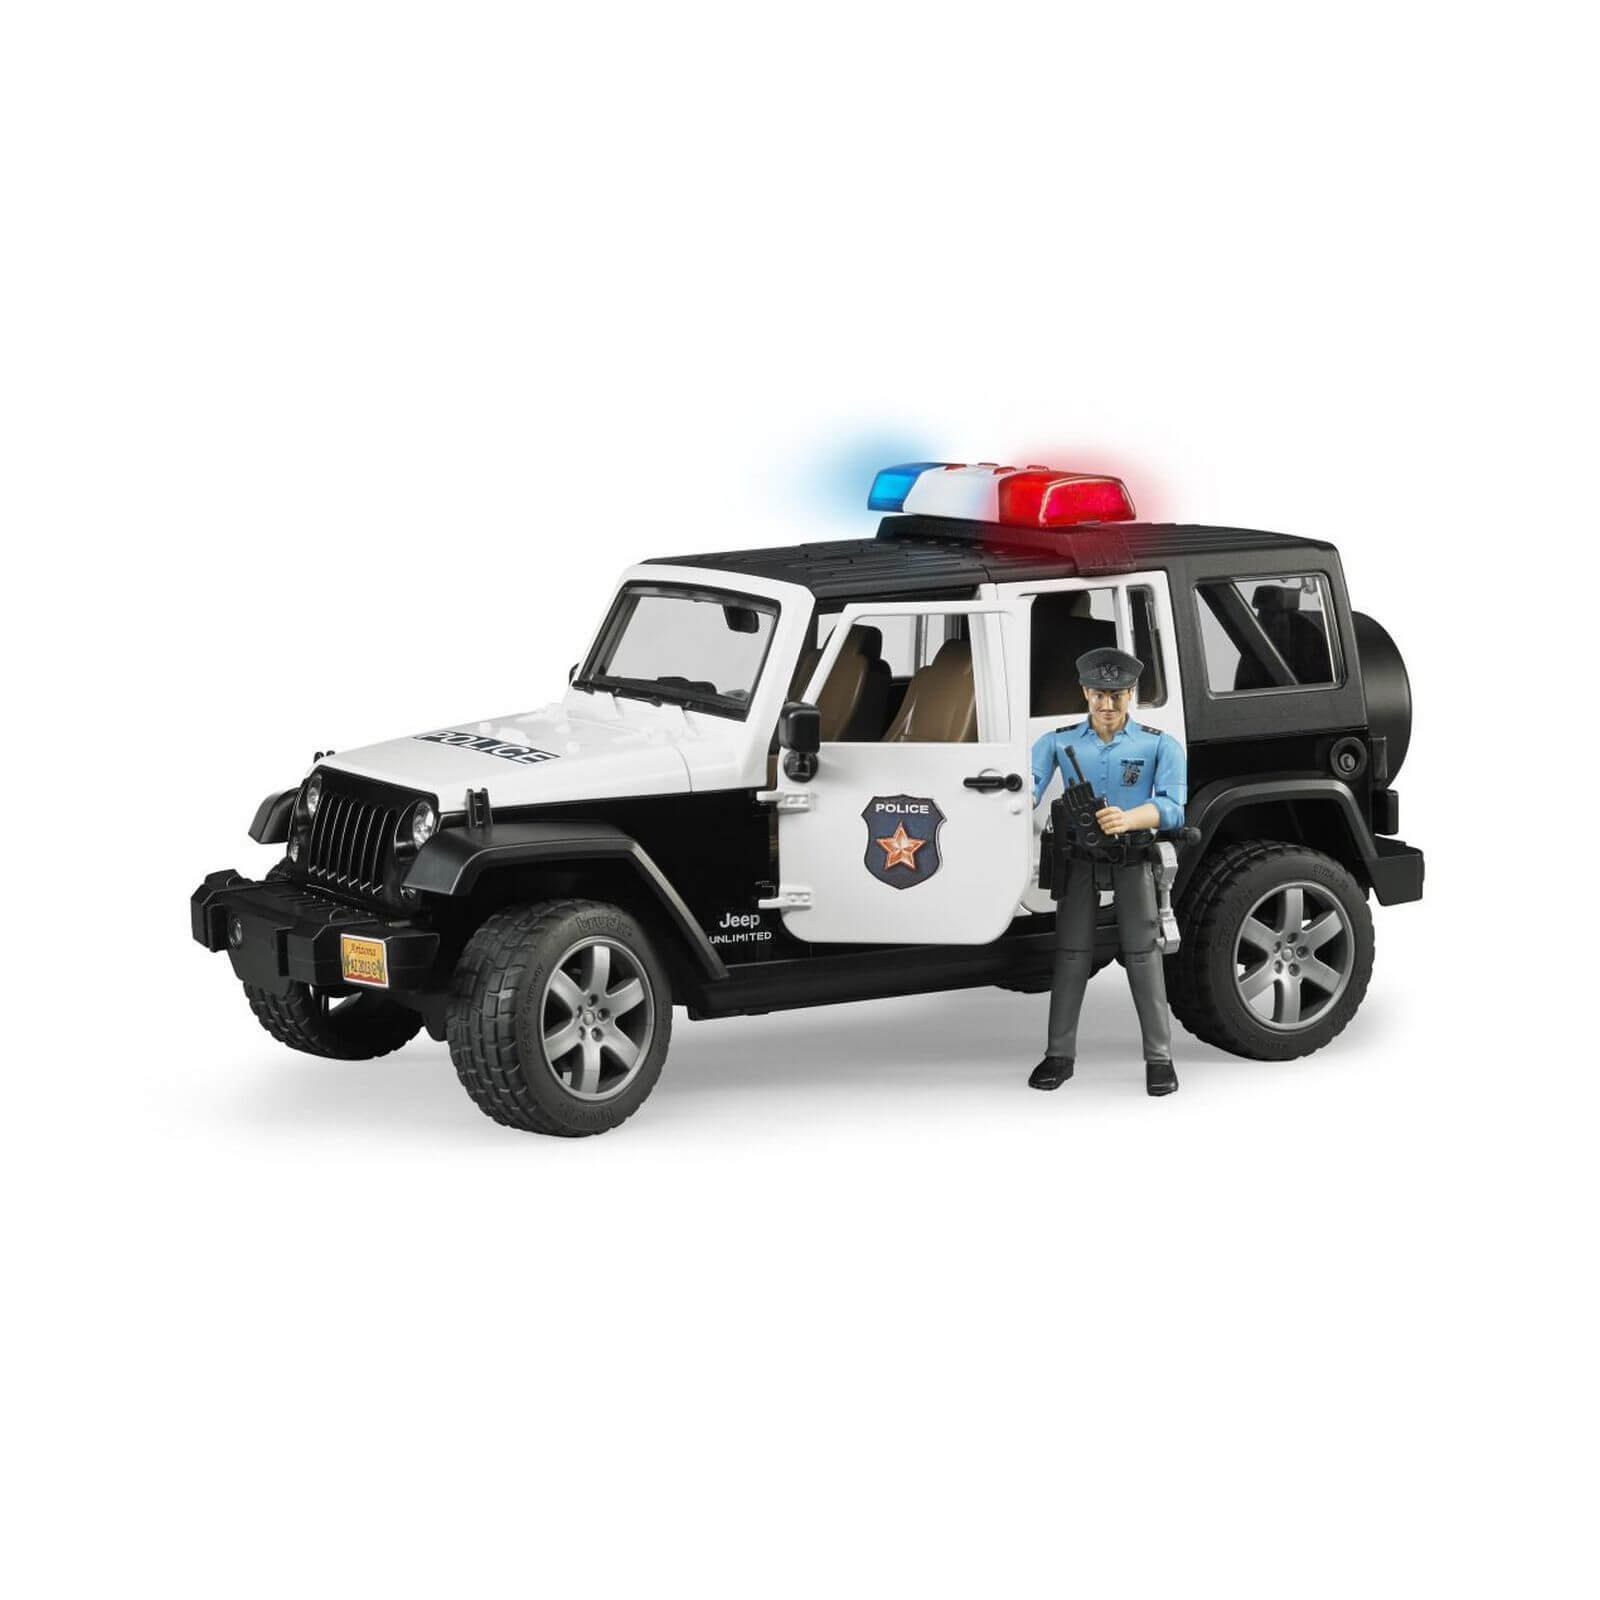 Bruder Jeep Wrangler Rubicon Police Vehicle with Policeman and